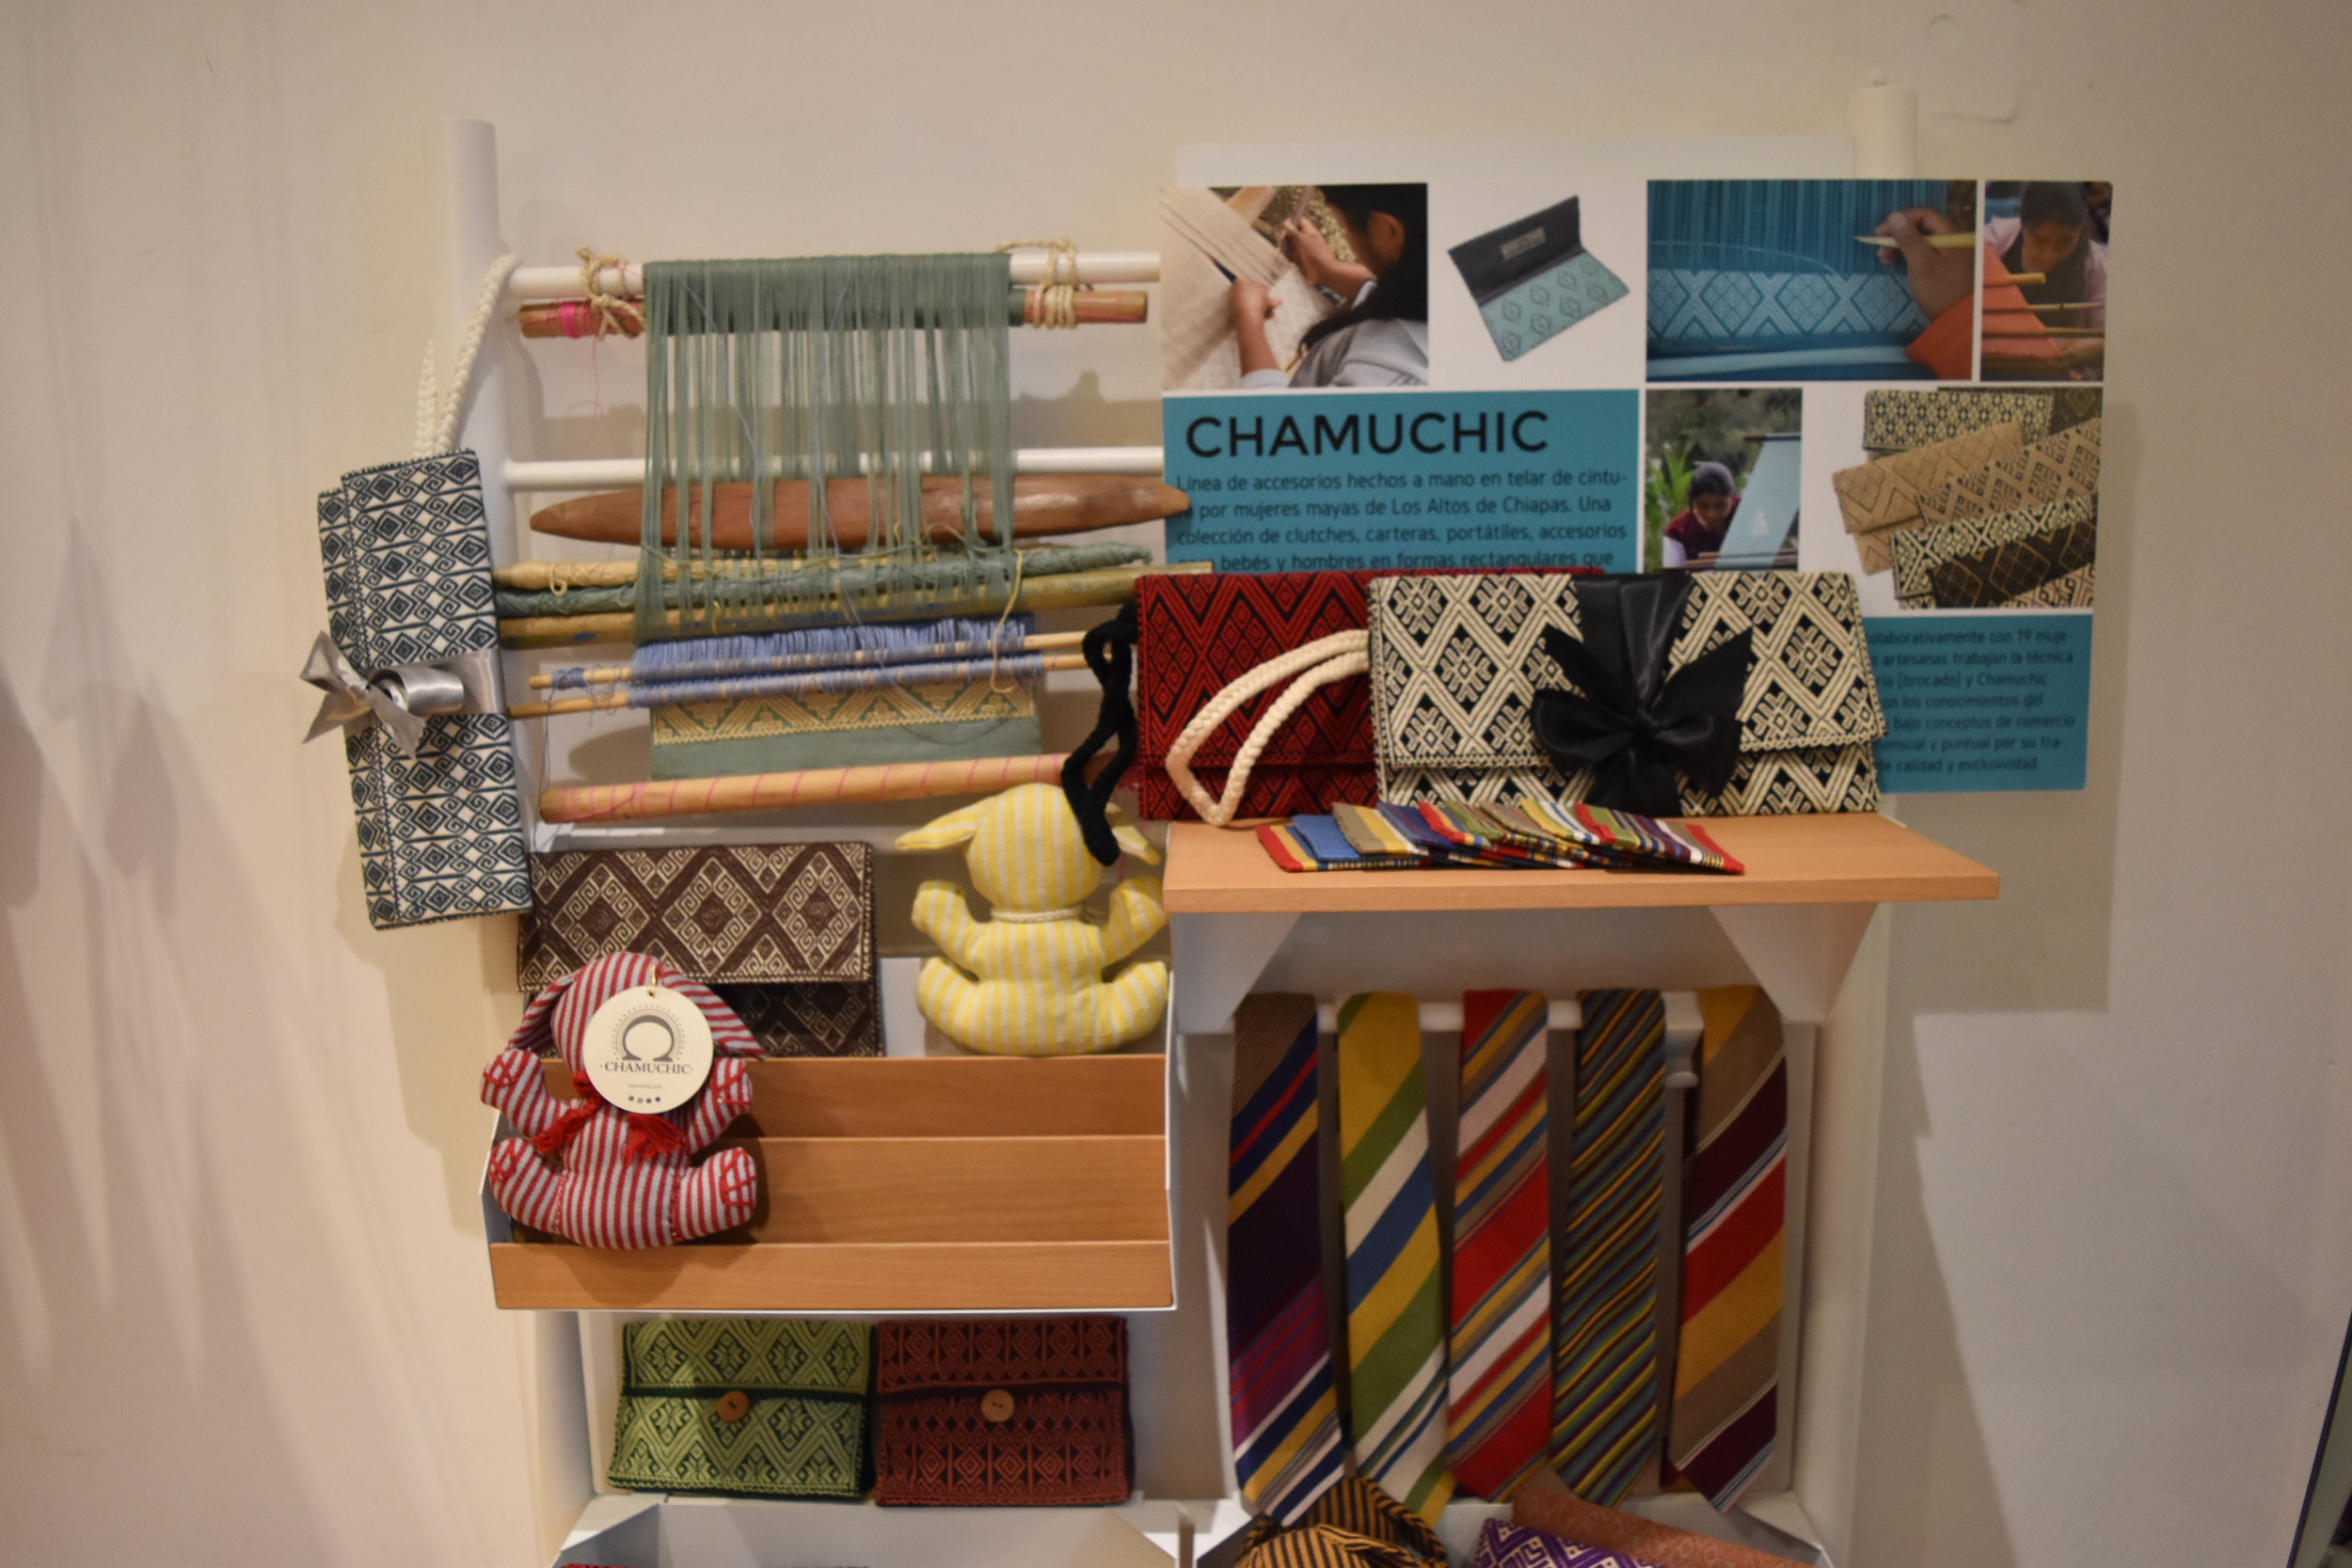 Chamuchi - A line of textile accessories designed and produced by indigenous artisans from Los Altos de Chiapas.